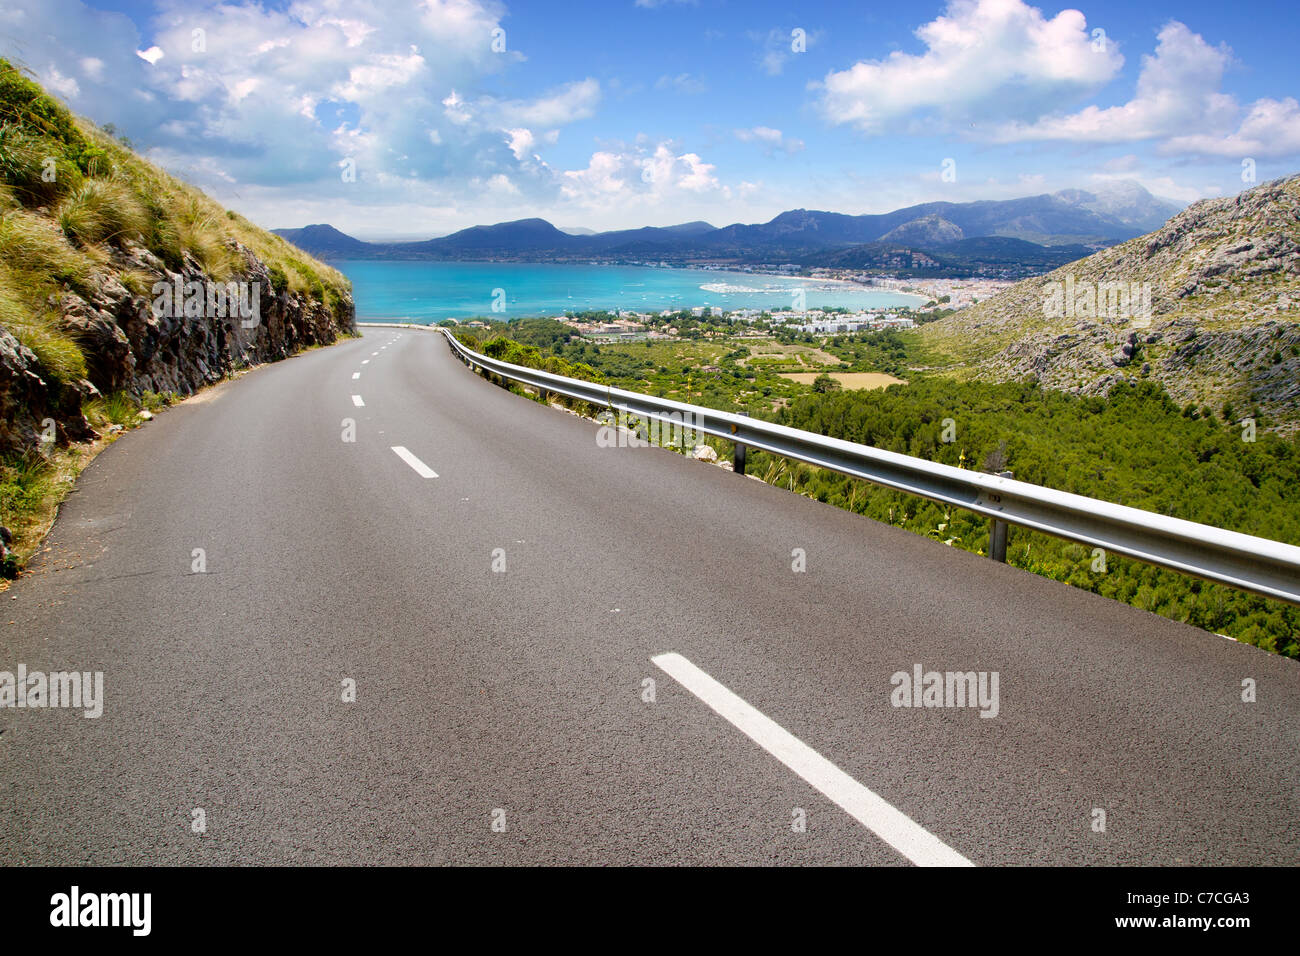 curve of road in mountain with Pollensa view in Mallorca balearic island - Stock Image